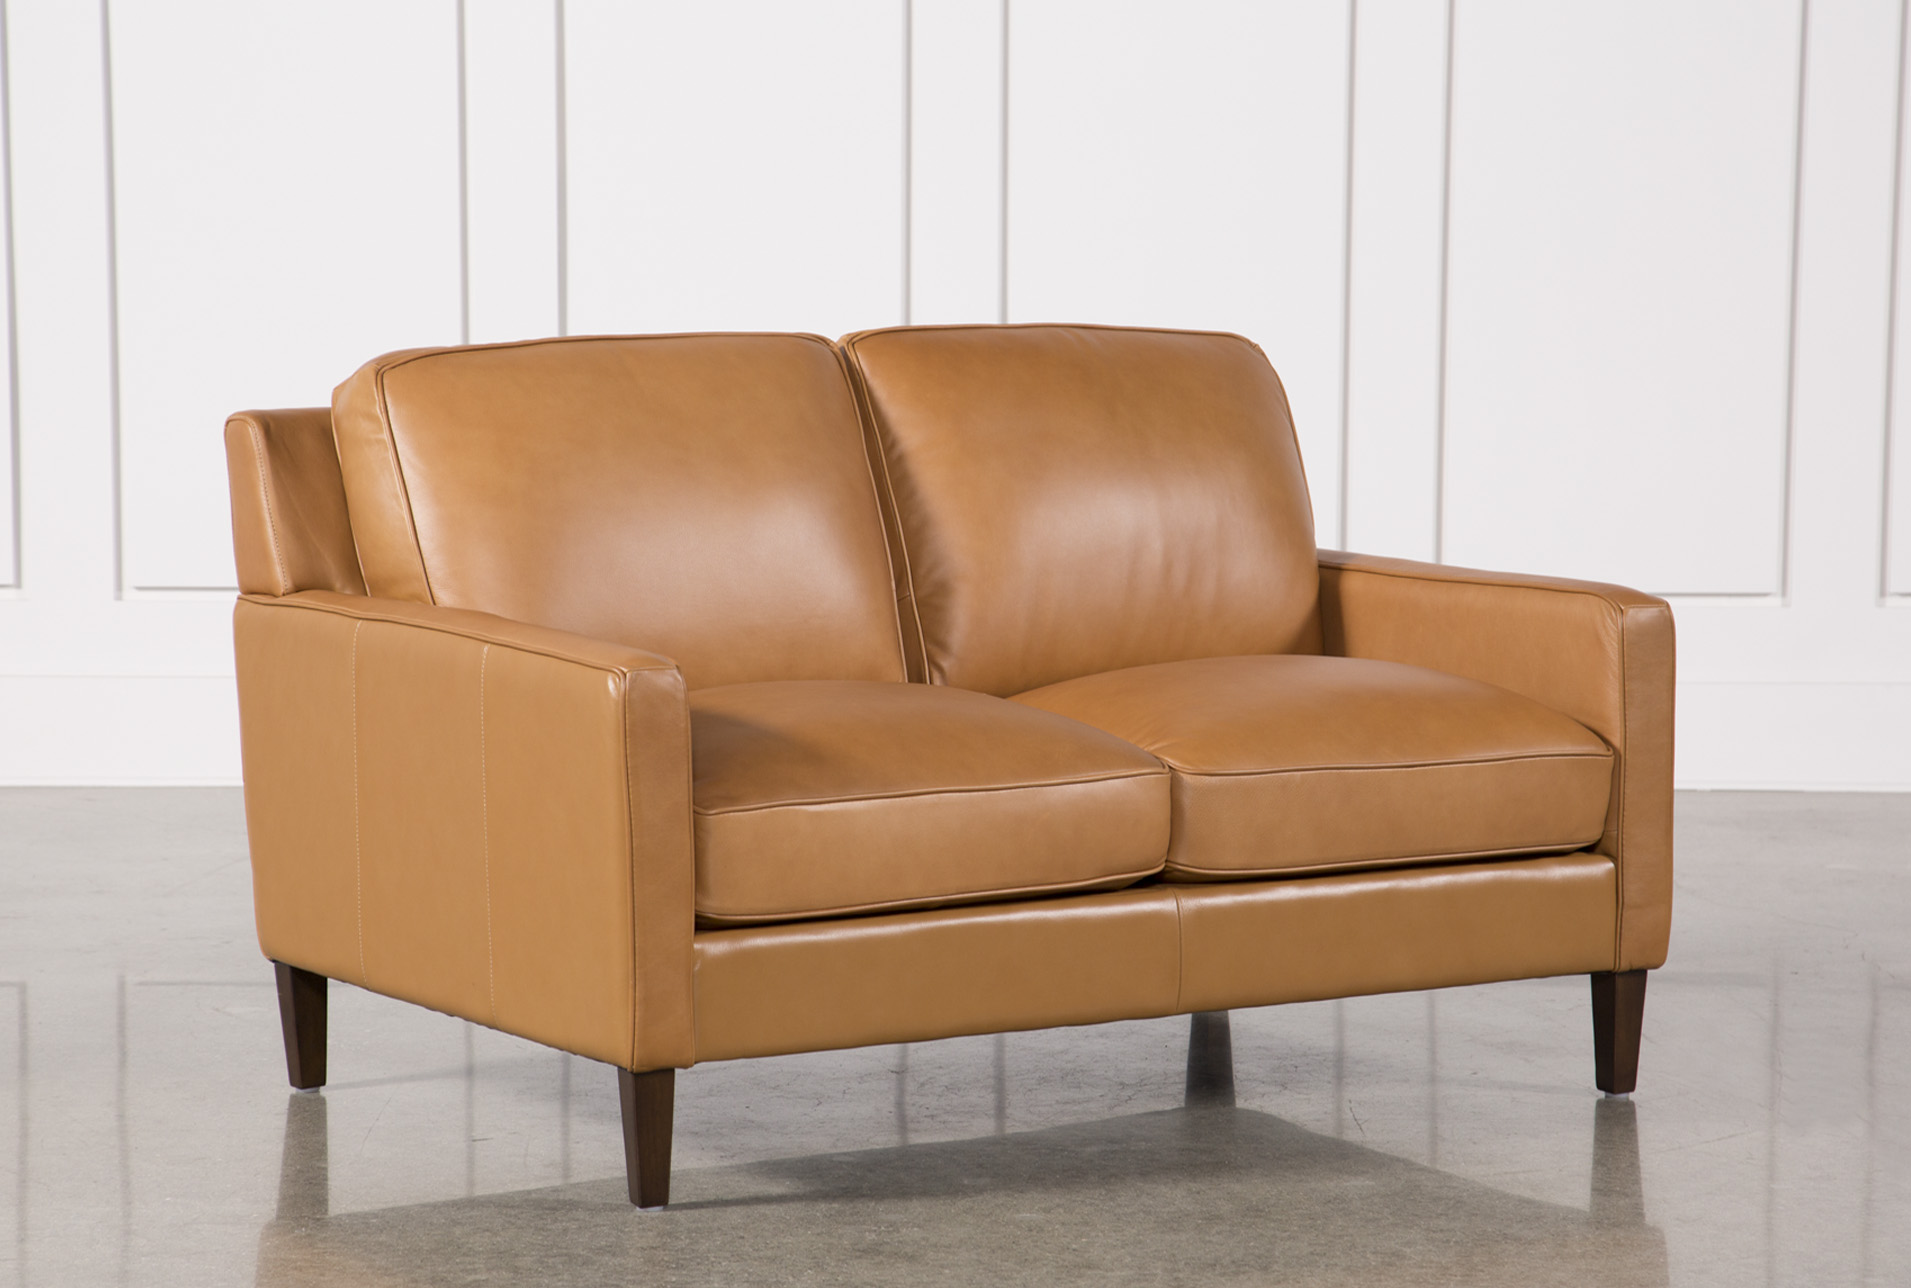 Candace Leather Loveseat (Qty: 1) Has Been Successfully Added To Your Cart.